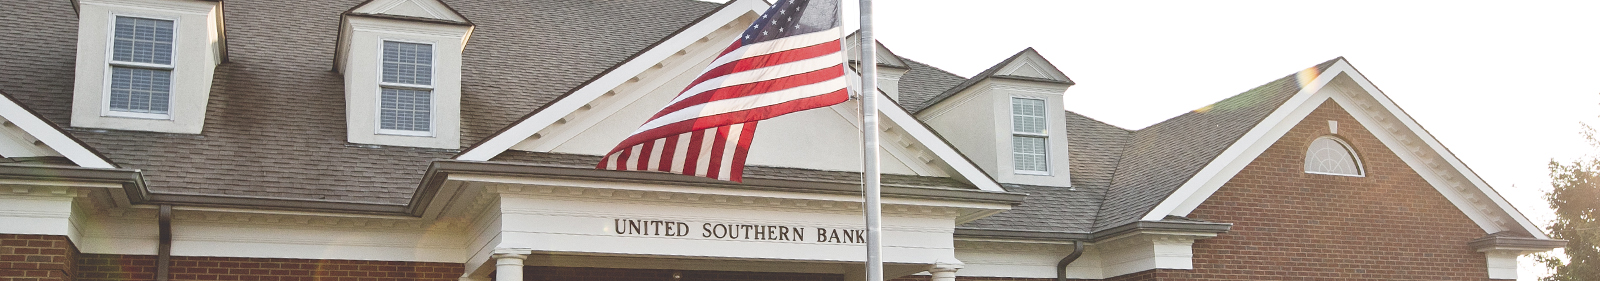 united southern bank hopkinsville